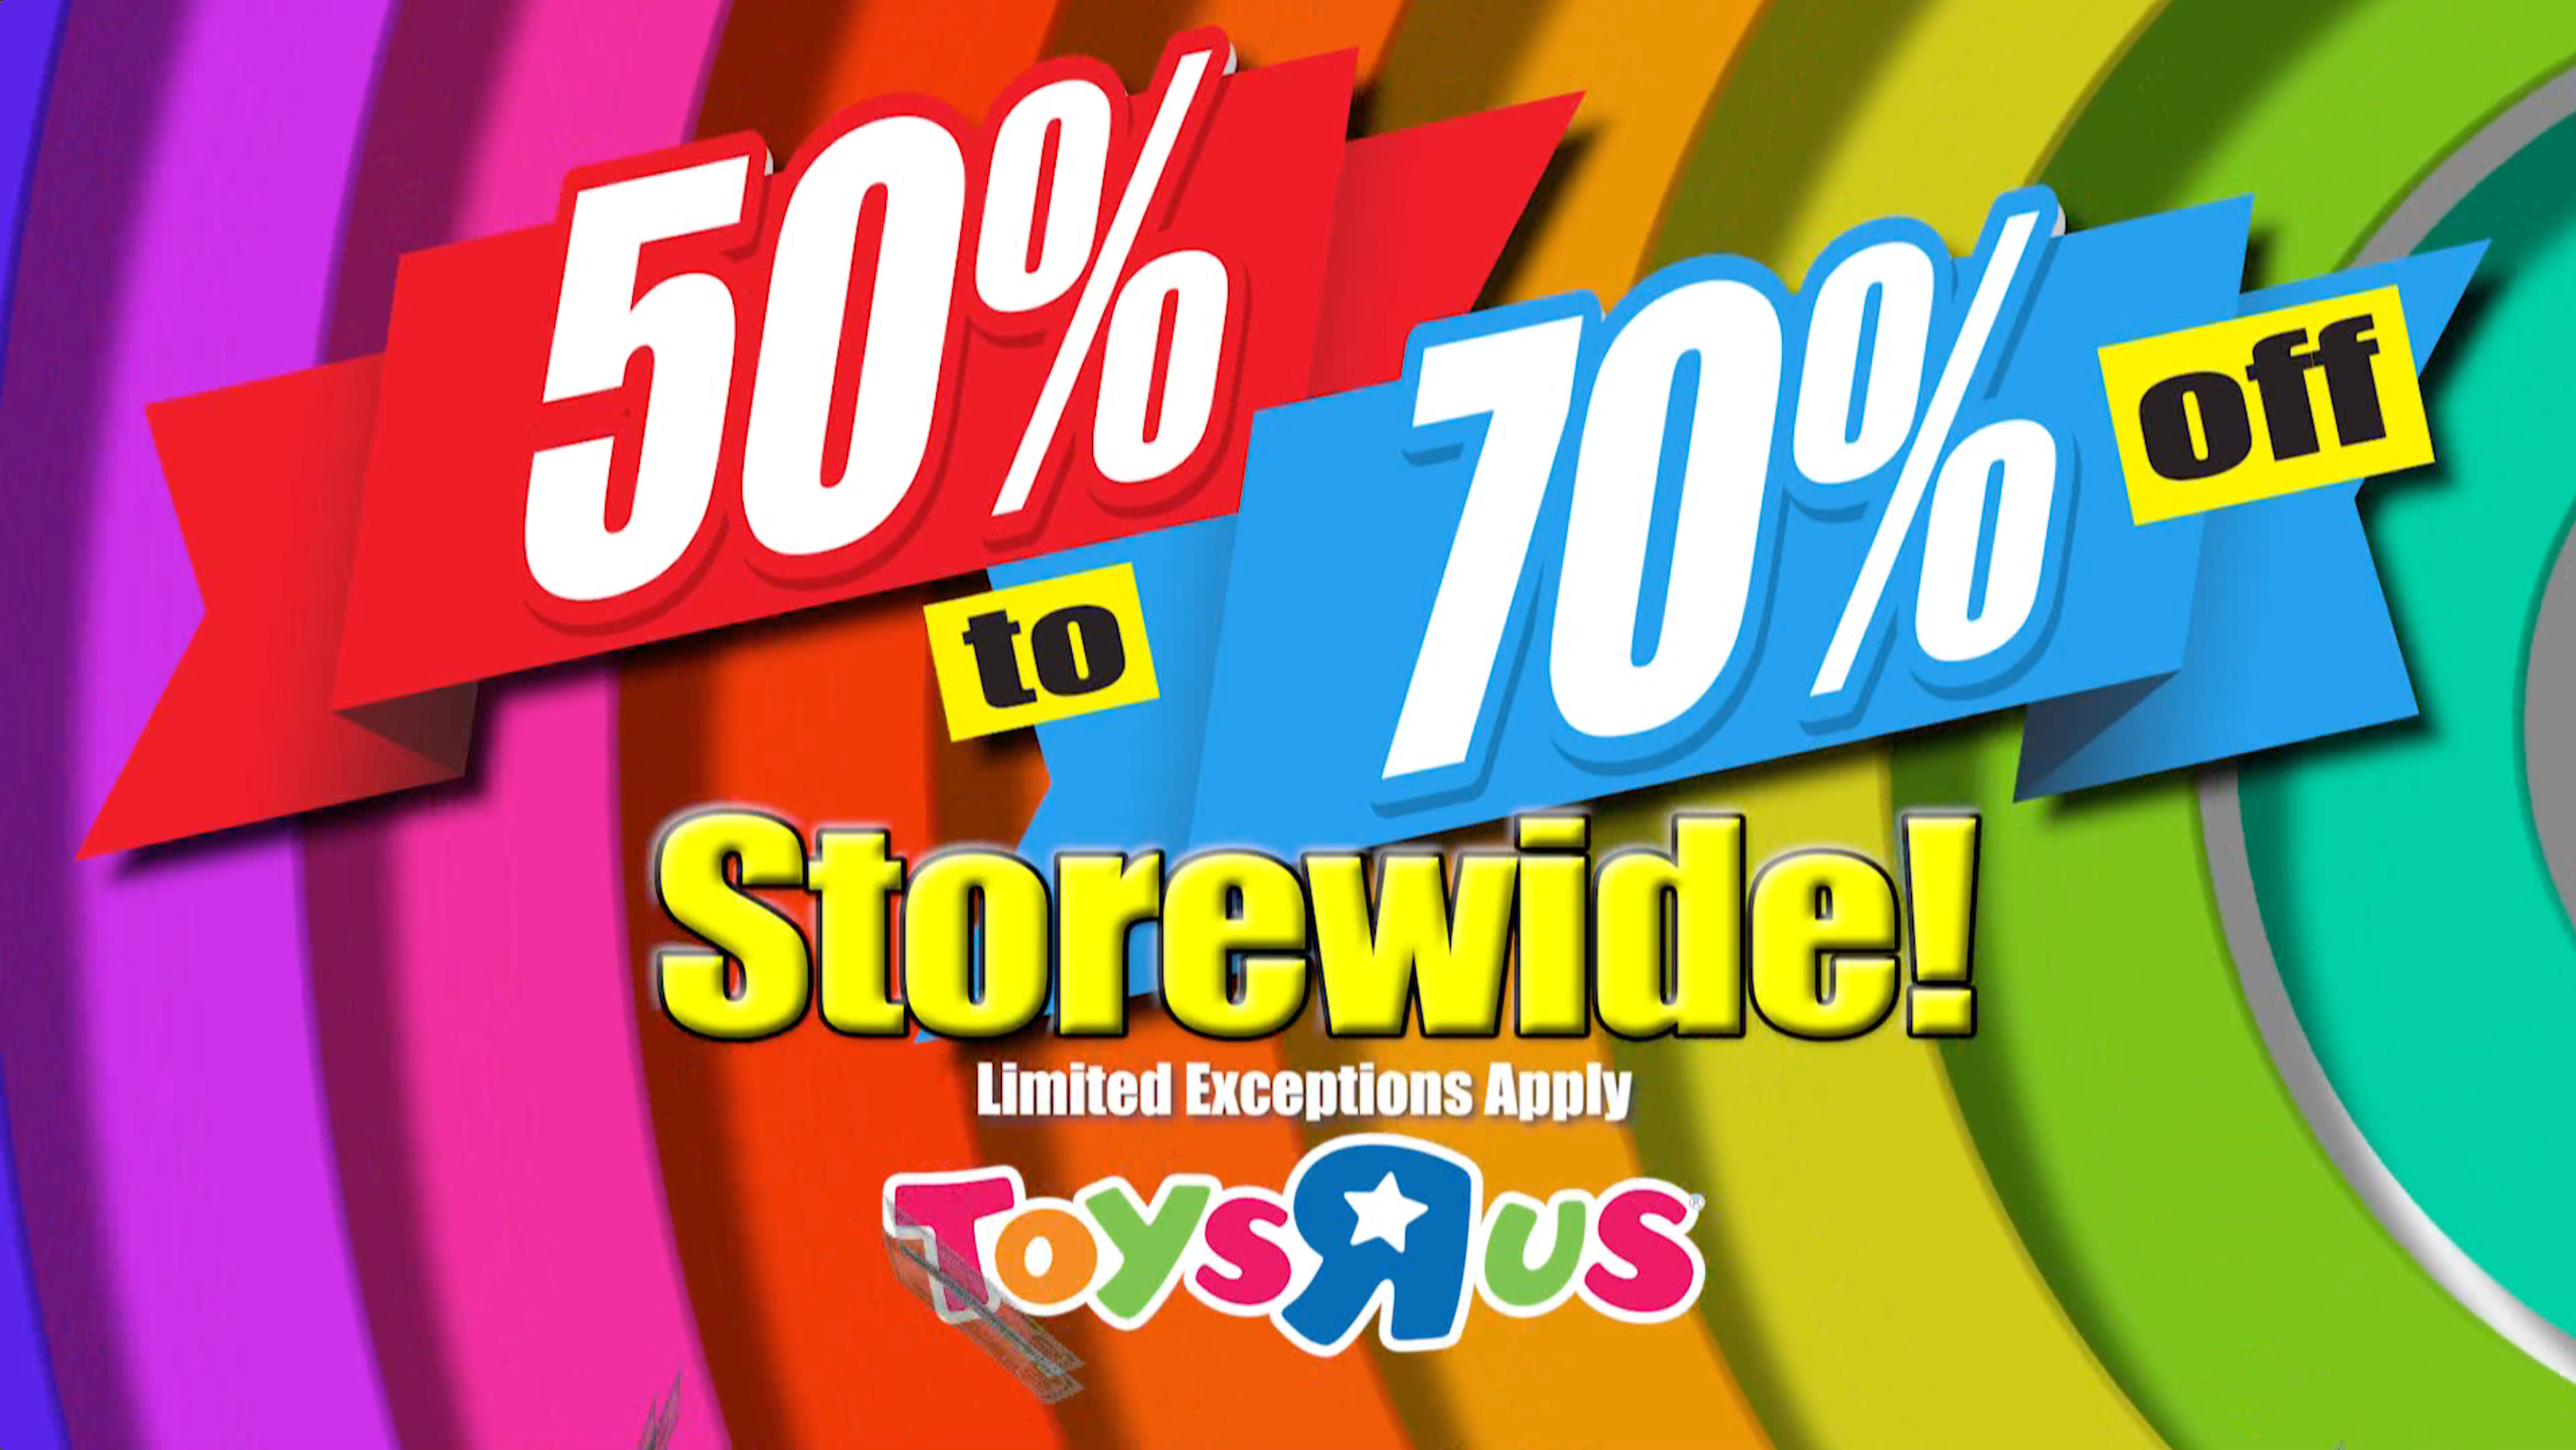 Toys R Us coupons & promo code for [August 2020]